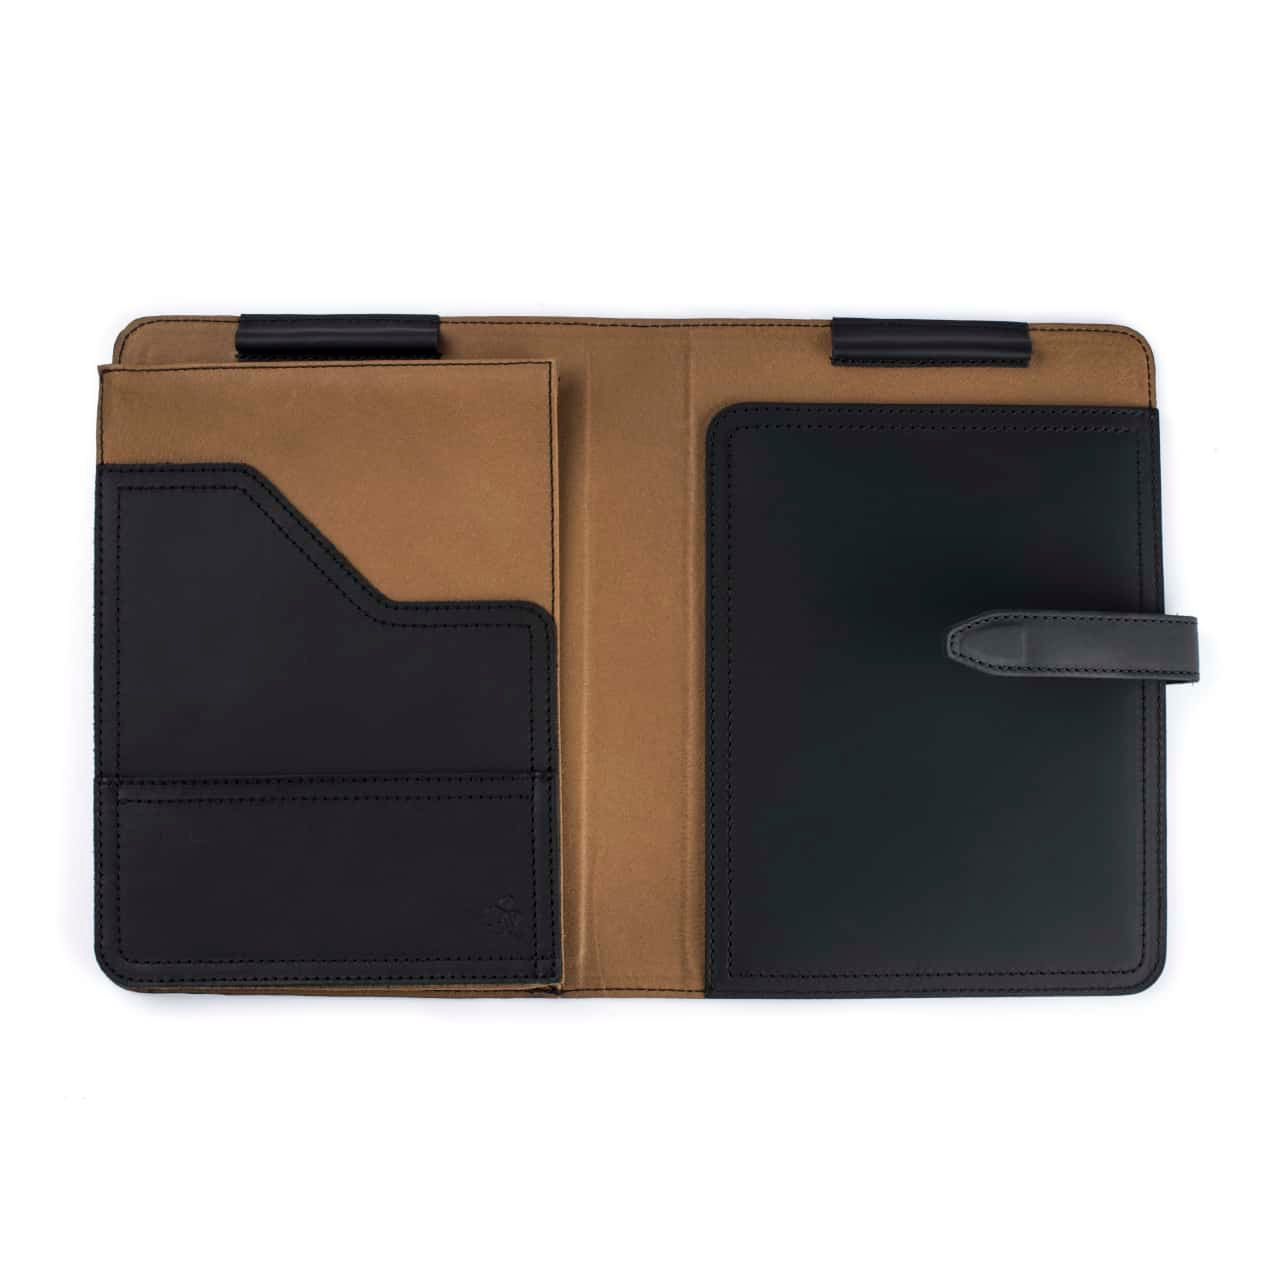 Leather Tablet Notepad Holder Open and Empty in the Color Black